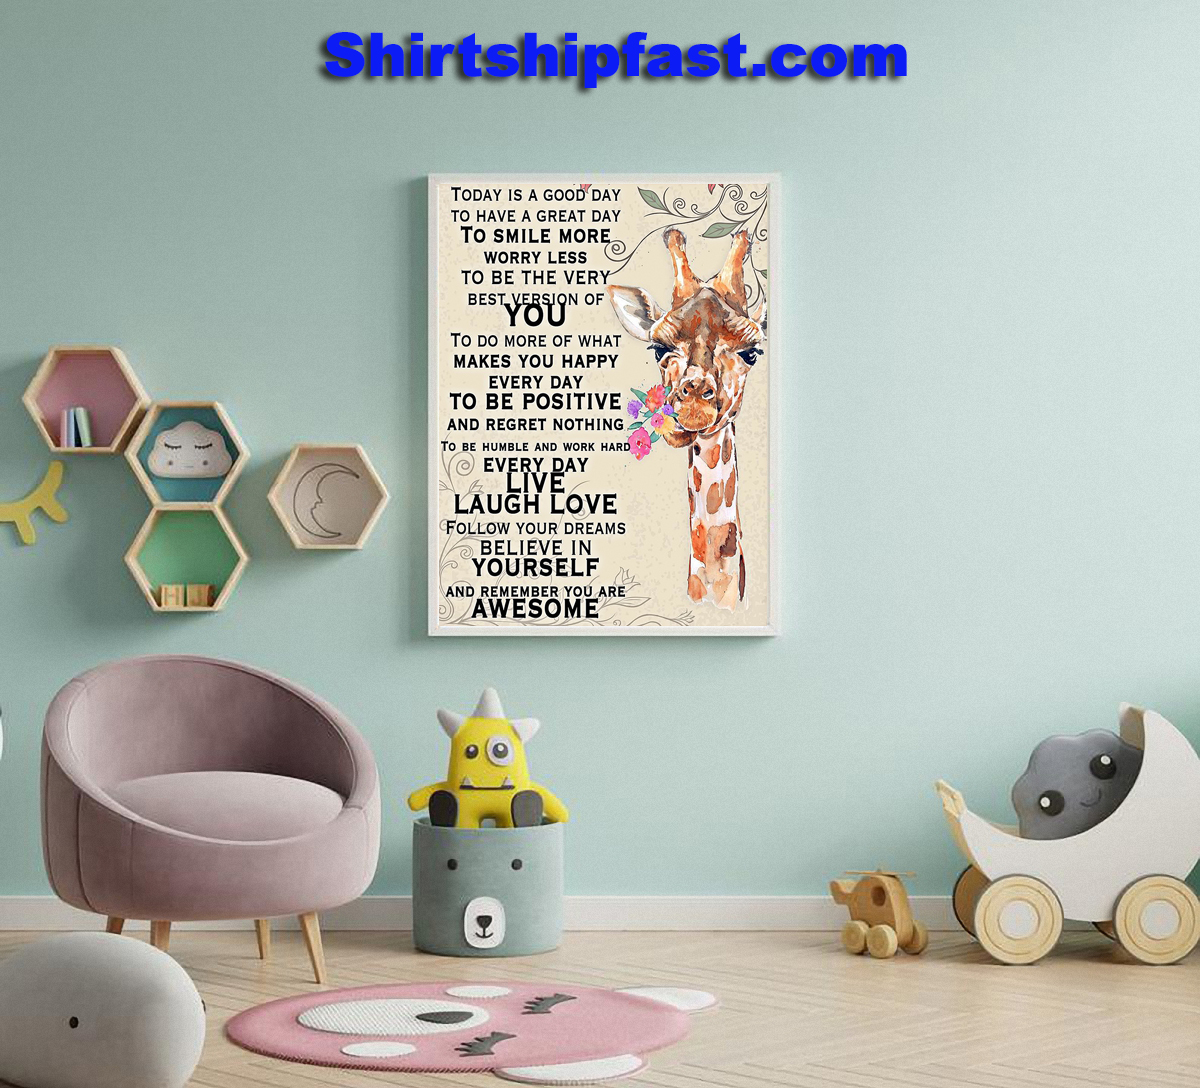 Giraffe today is a good day to have a great day poster - Picture 2